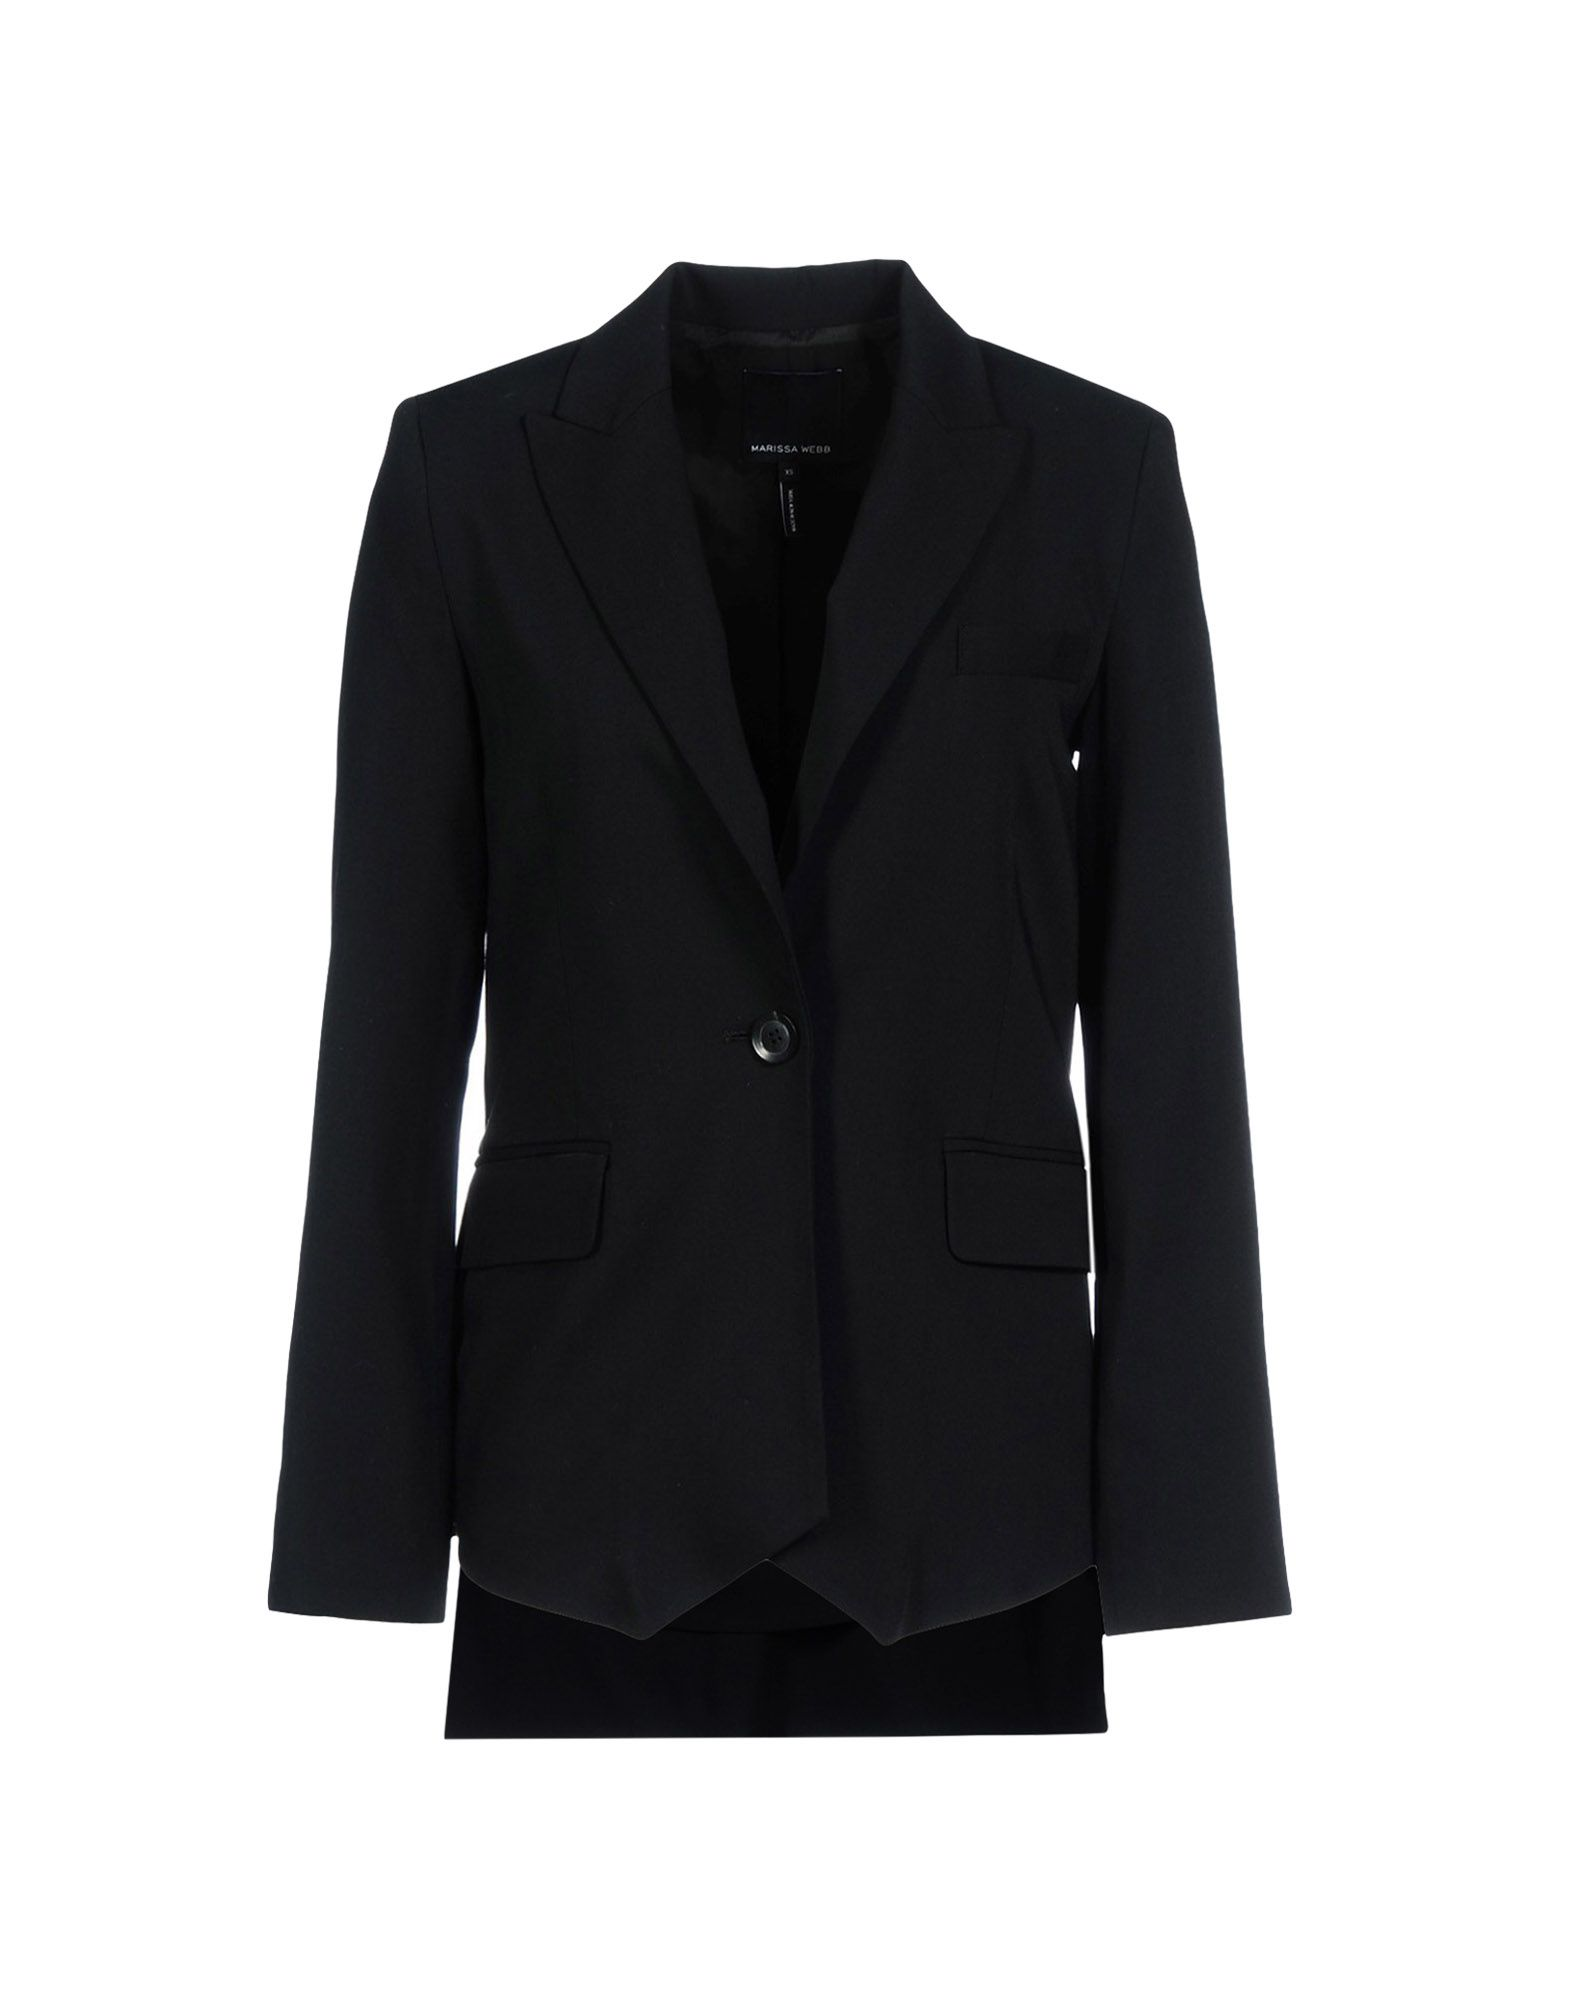 MARISSA WEBB Blazers in Black